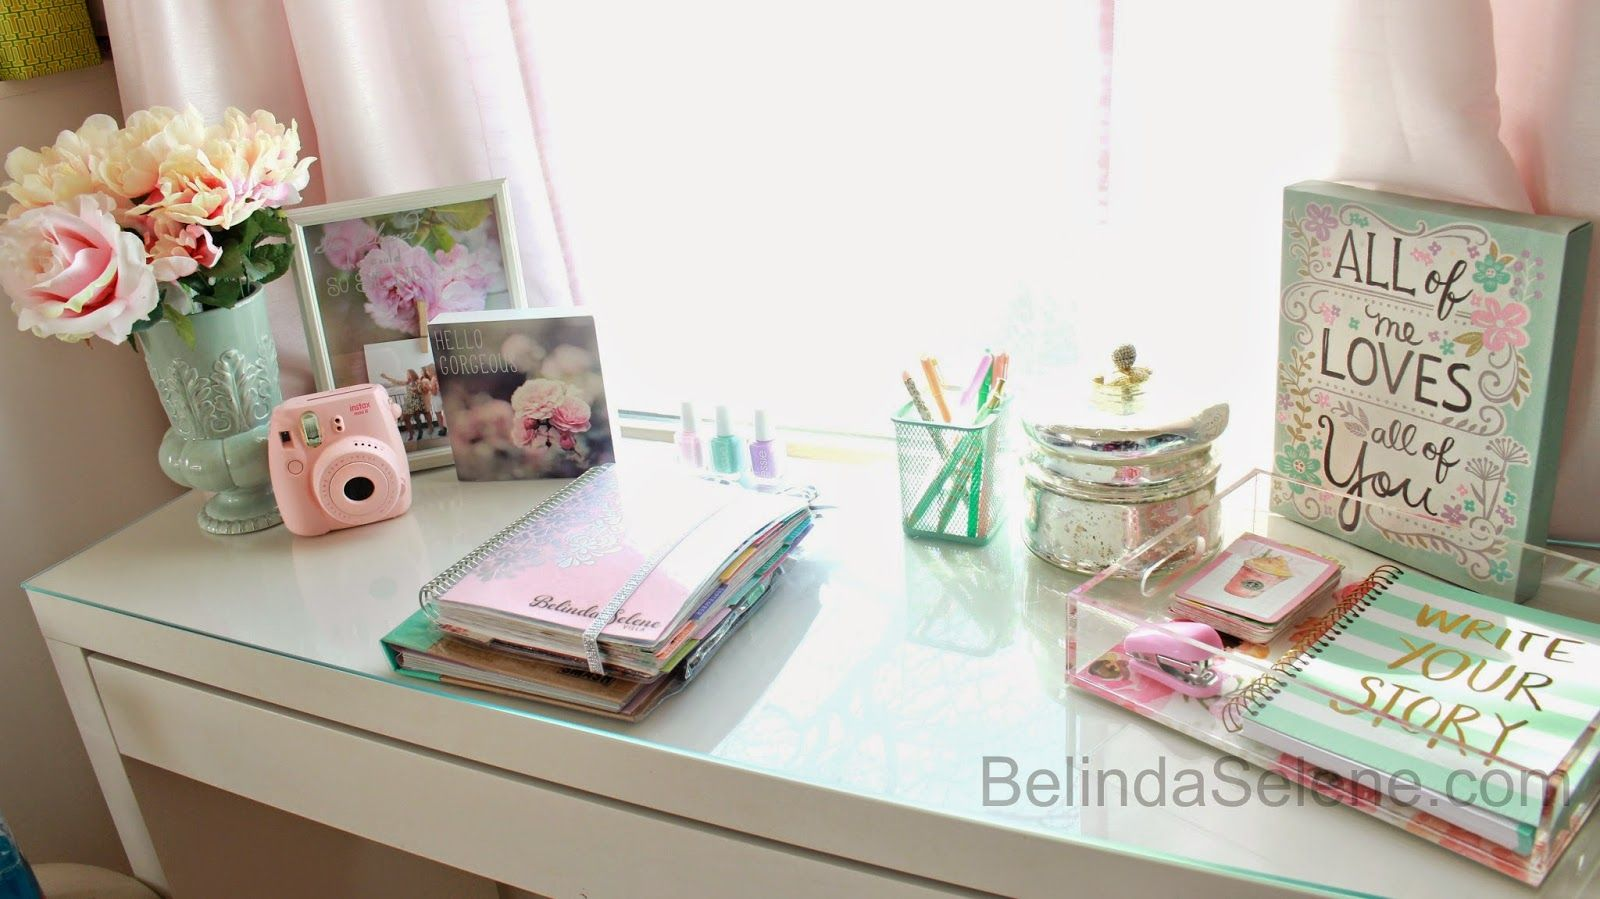 Bedroom Desk Tumblr Diy Tumblr Inspired Office Desk Space Apartment Desk